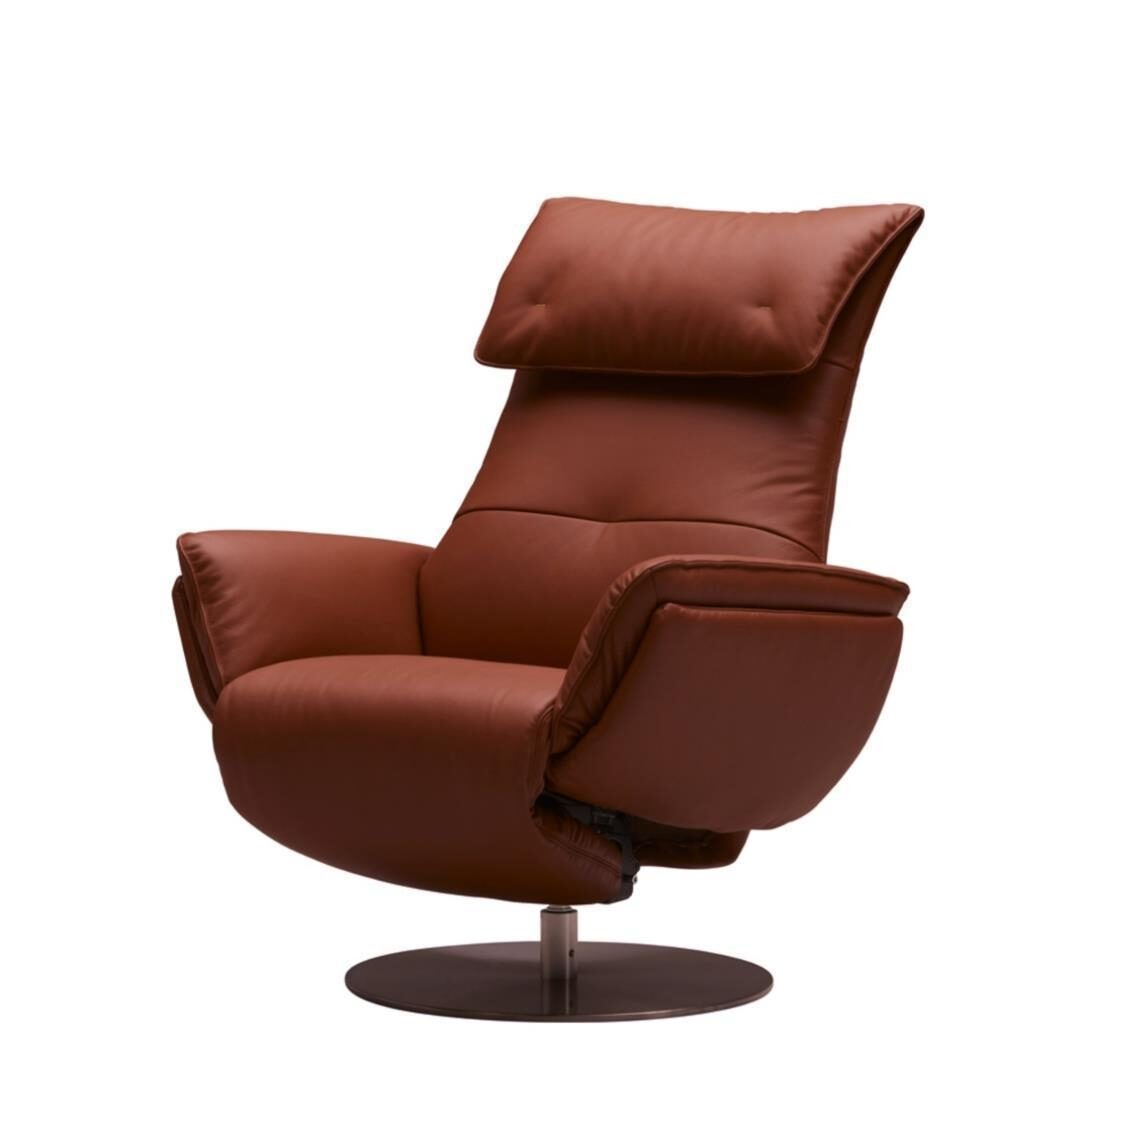 Wolke Chair - Half Leather L663A Terra Cotta